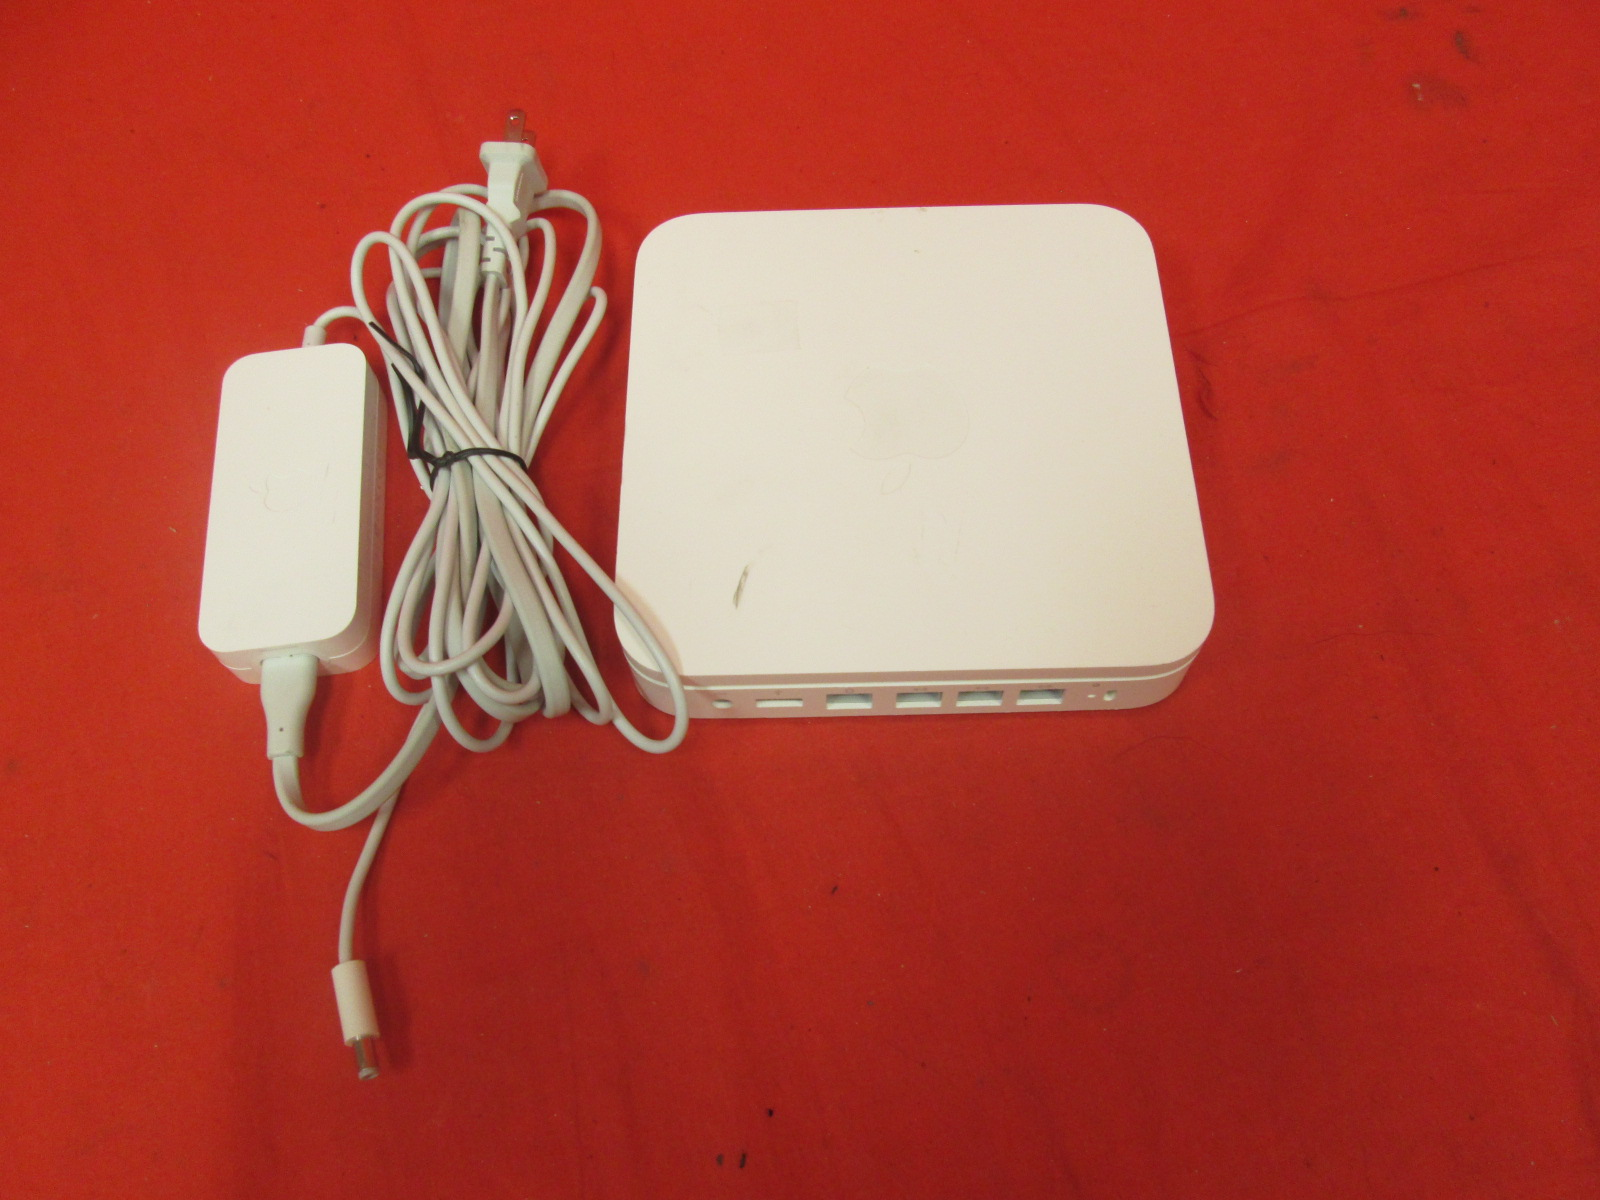 Apple Airport Extreme 802.11N 5th Generation Incomplete